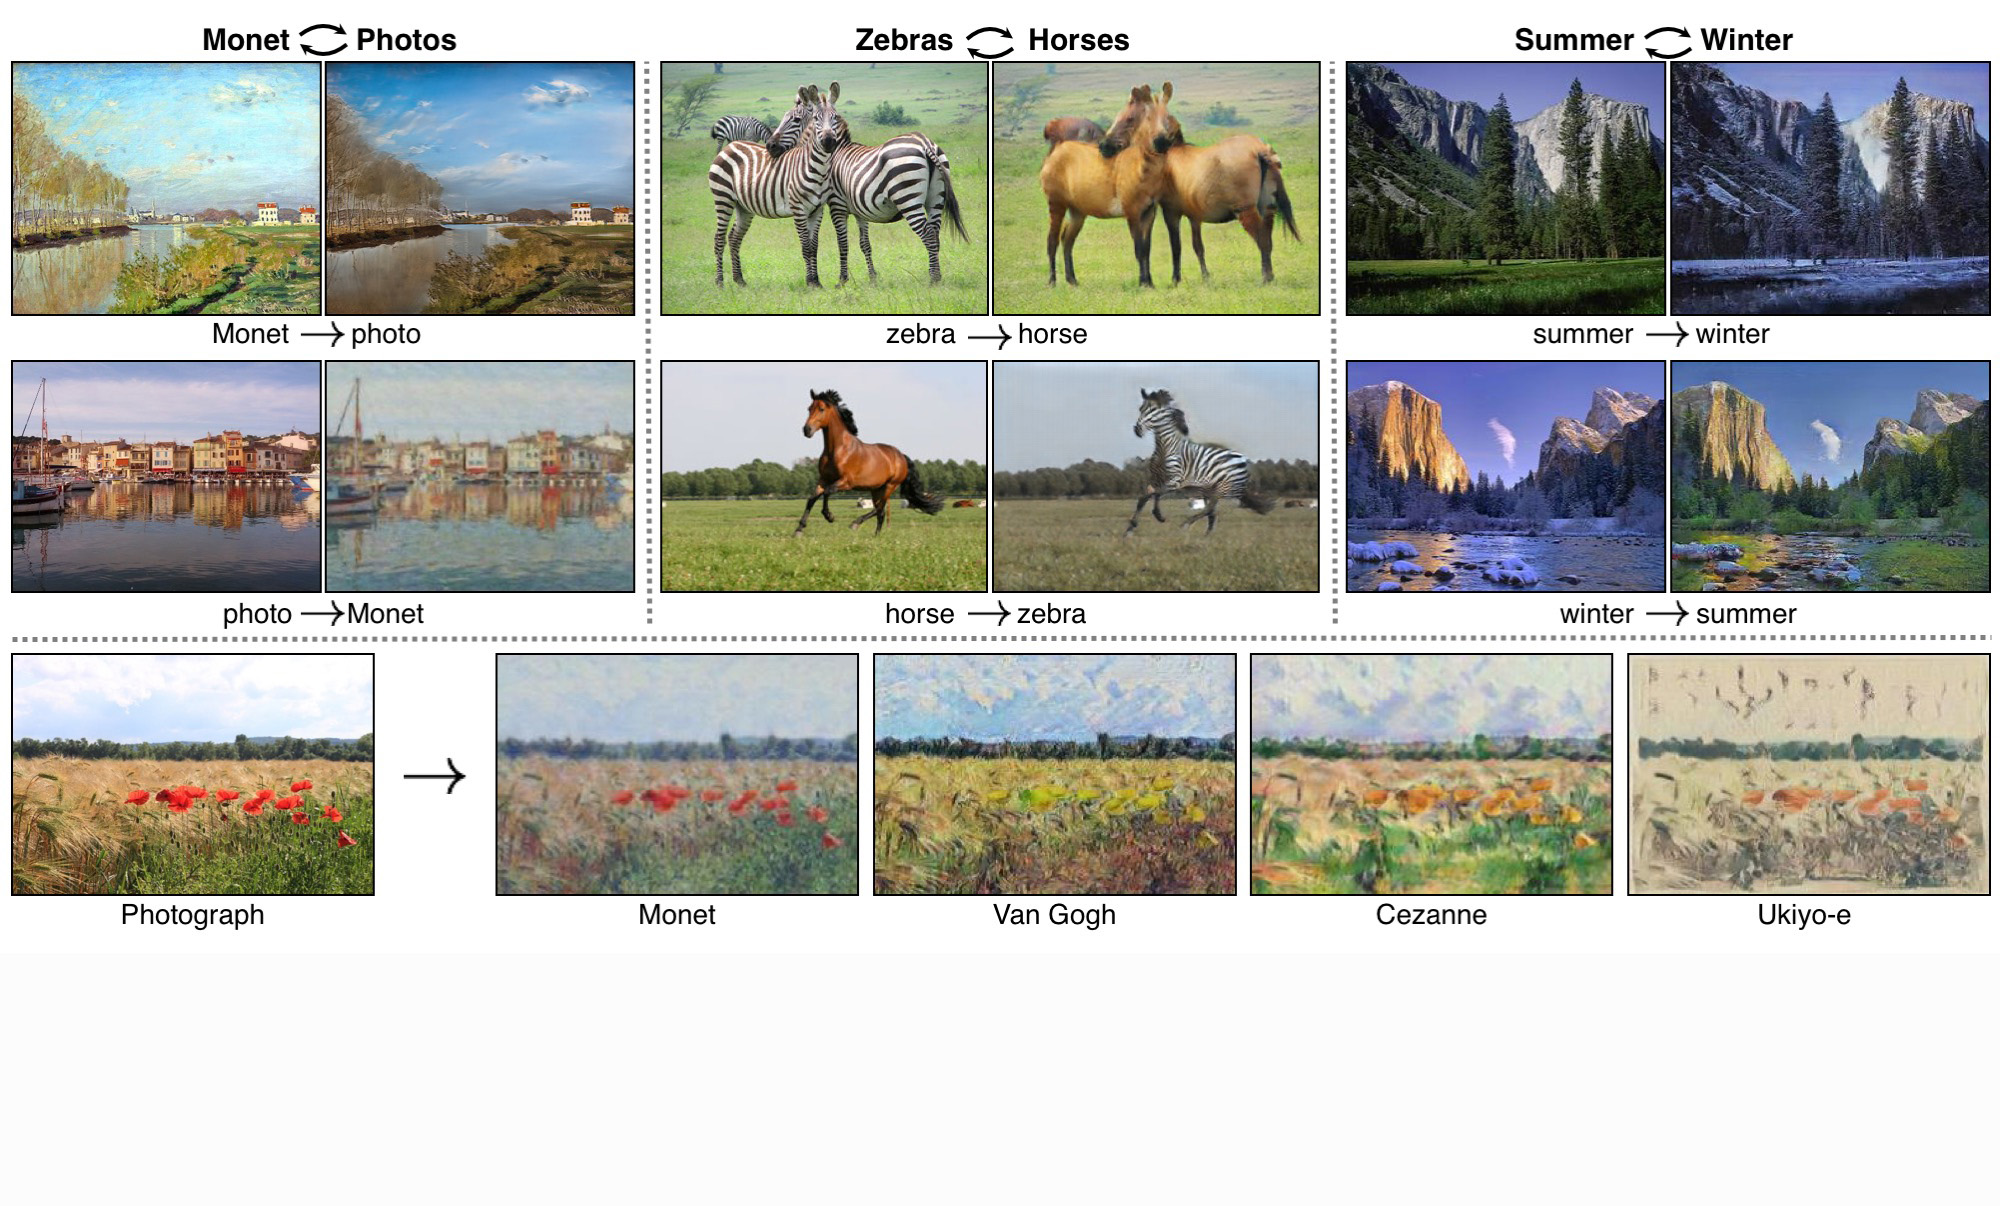 The PyTorch implementation of CycleGAN has been used for advanced image-to-image translation.